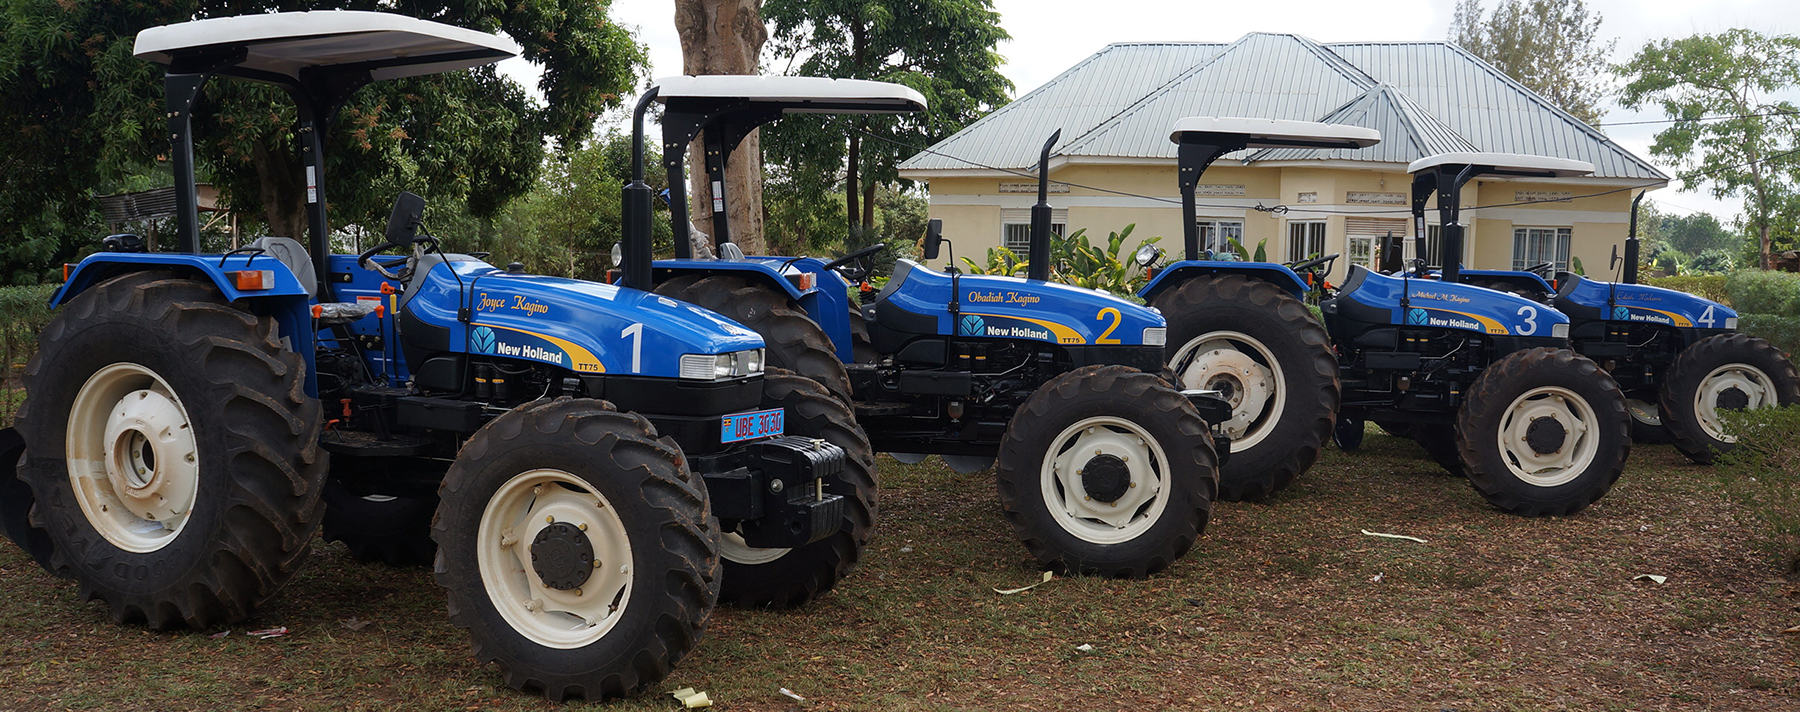 Tractor Hire Service